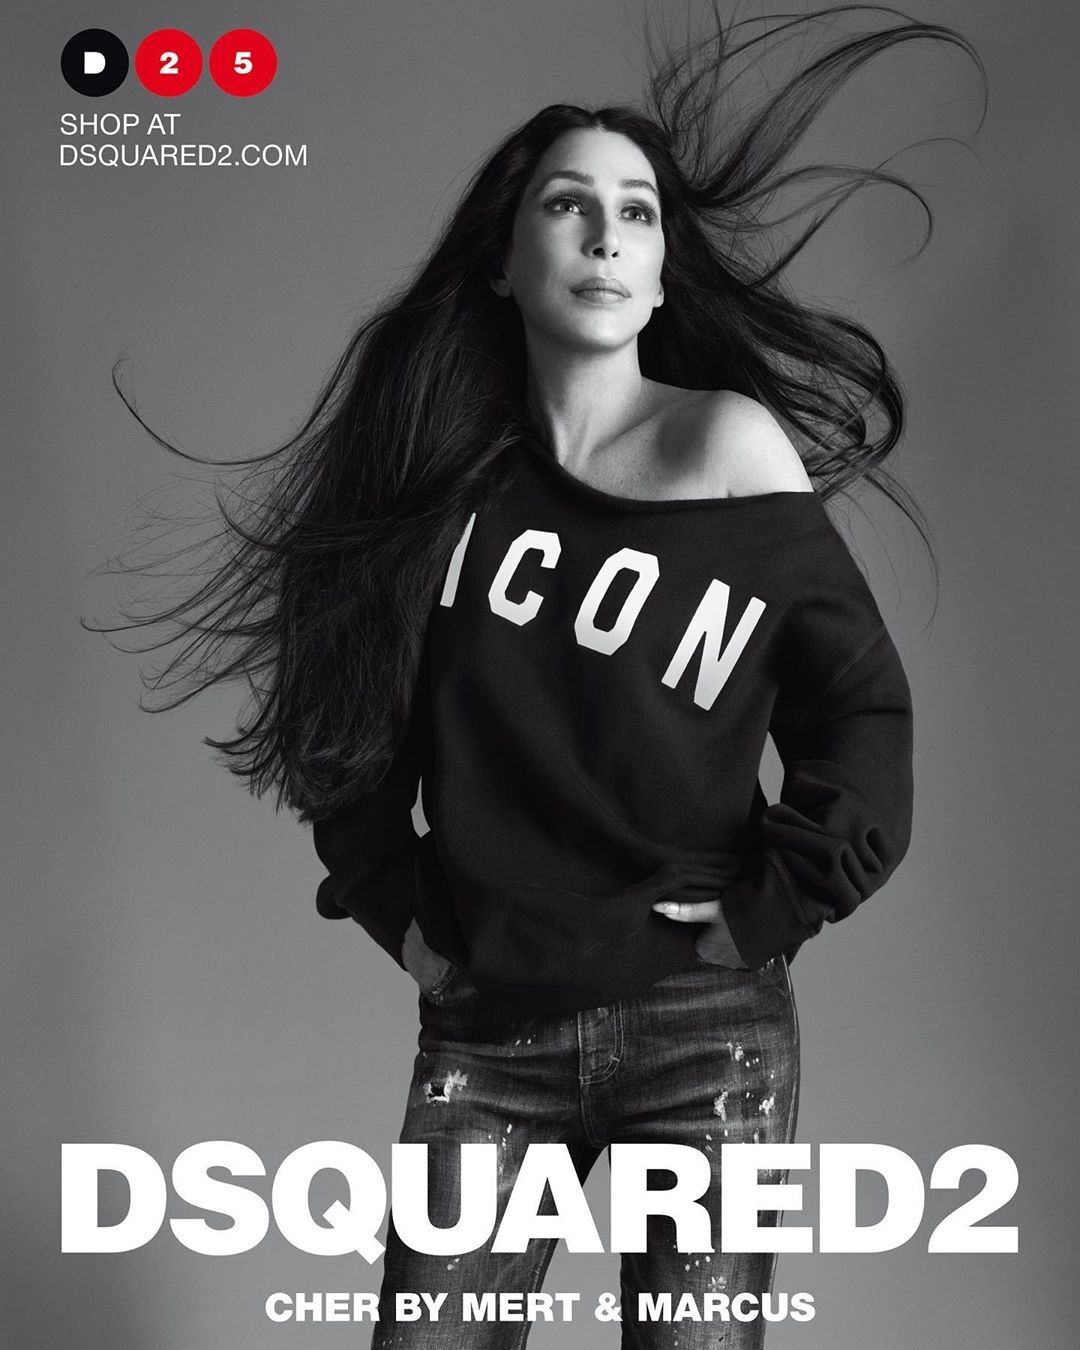 Cher has retweeted fans excited to spot the campaign's first billboards in New York City - teasing an ad for the DSquared2 campaign in Times Square